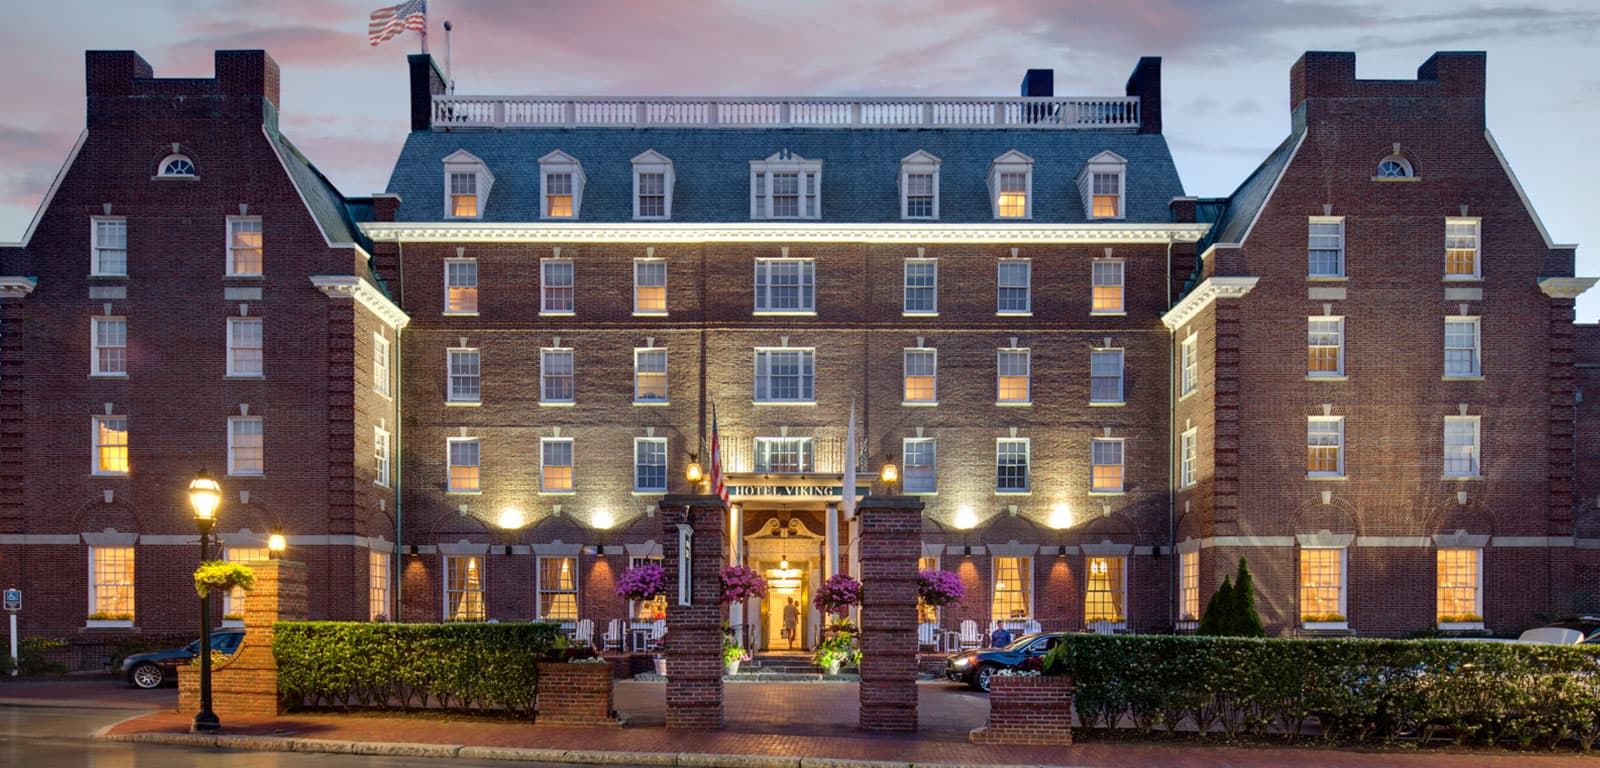 Exterior Shot of Hotel Viking in Newport, Rhode Island